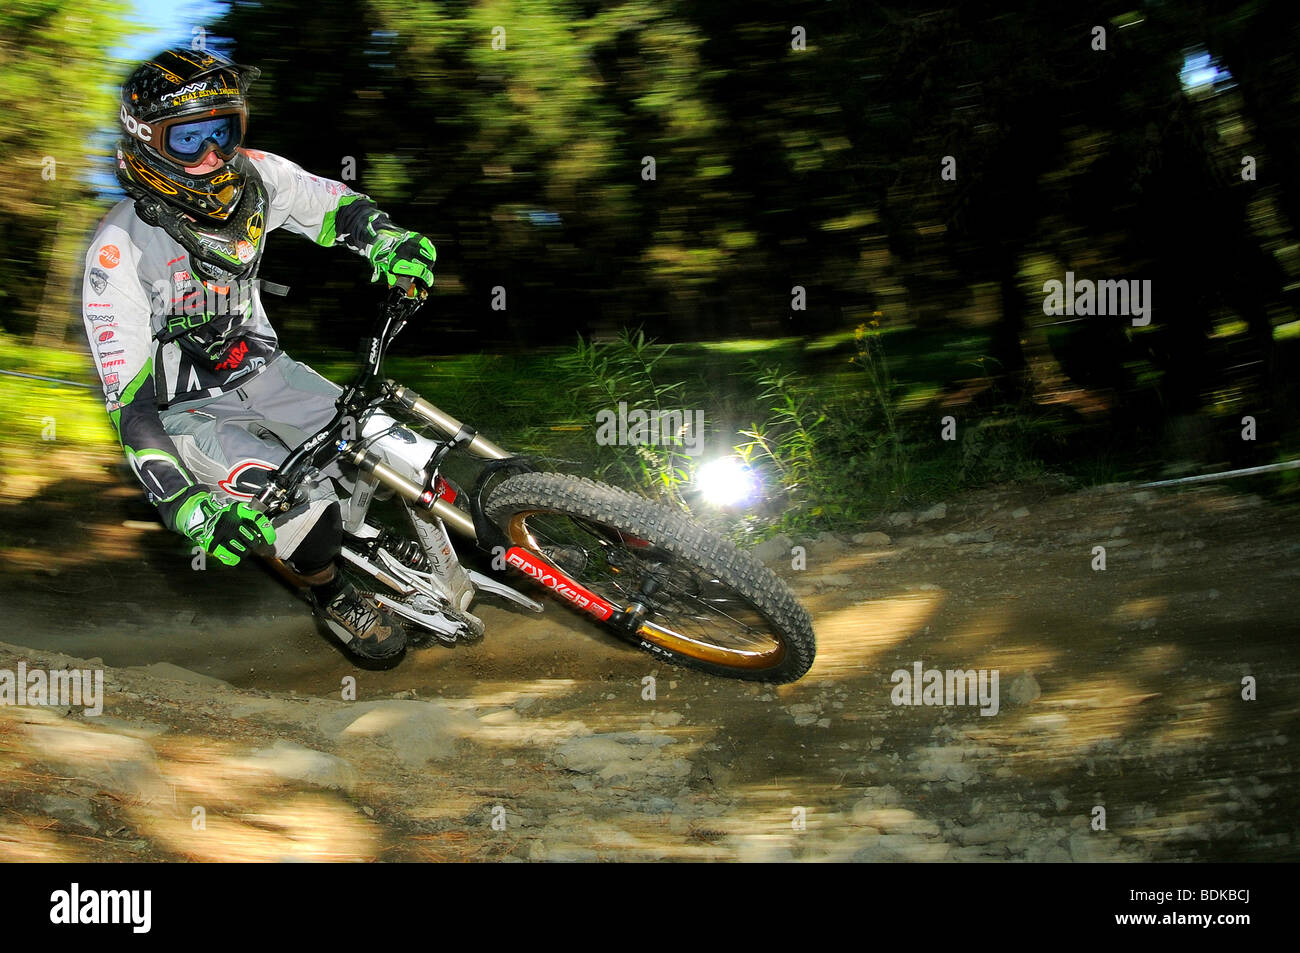 A Downhill Mountain Biker Rides At Speed In A Full Face Helmet And